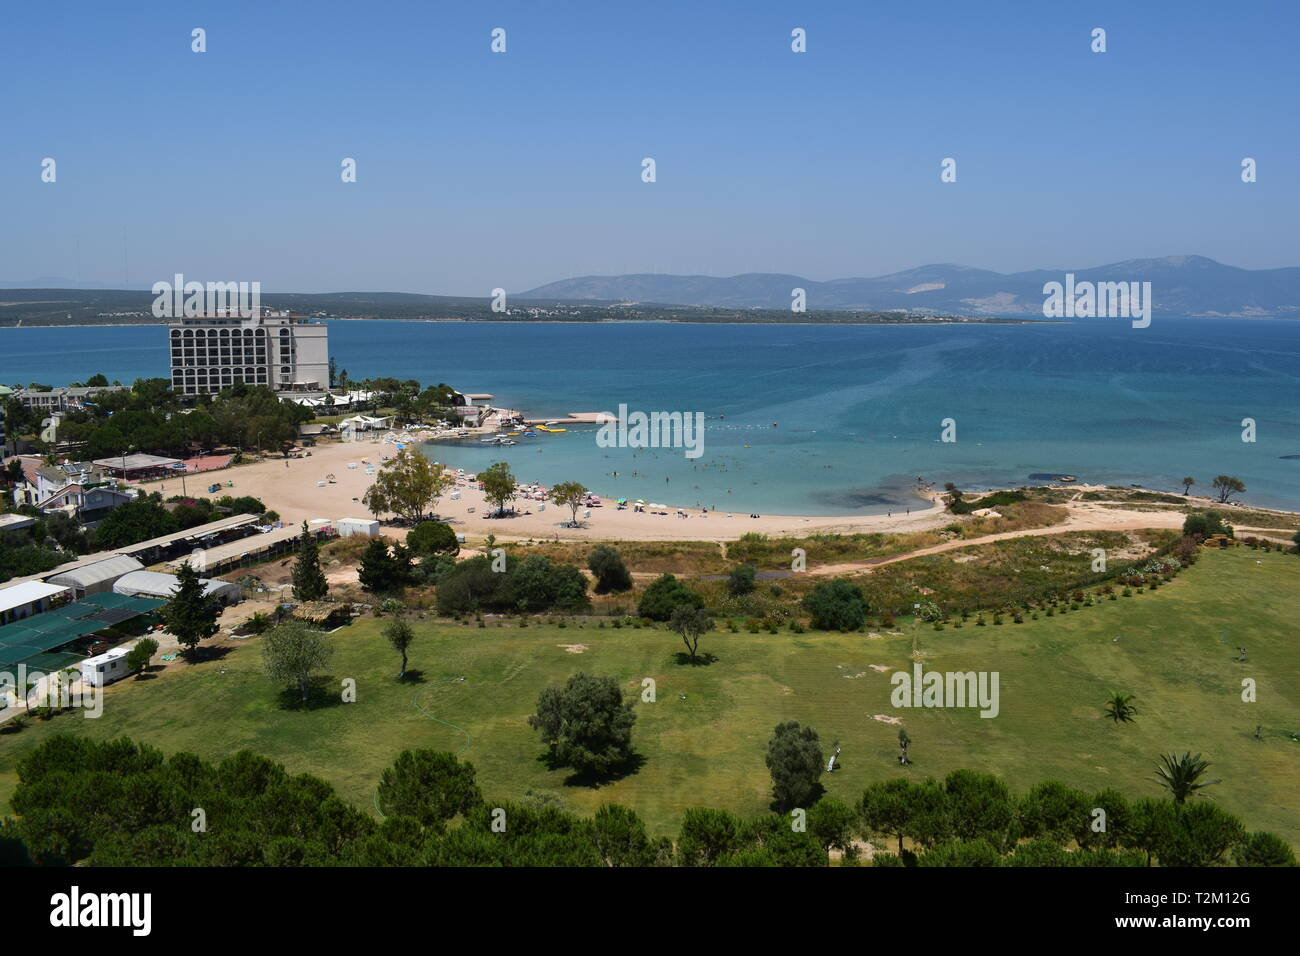 A picture made by drone of the resort village Didim in Turkey, beautiful sea and coastline - peninsula - Stock Image